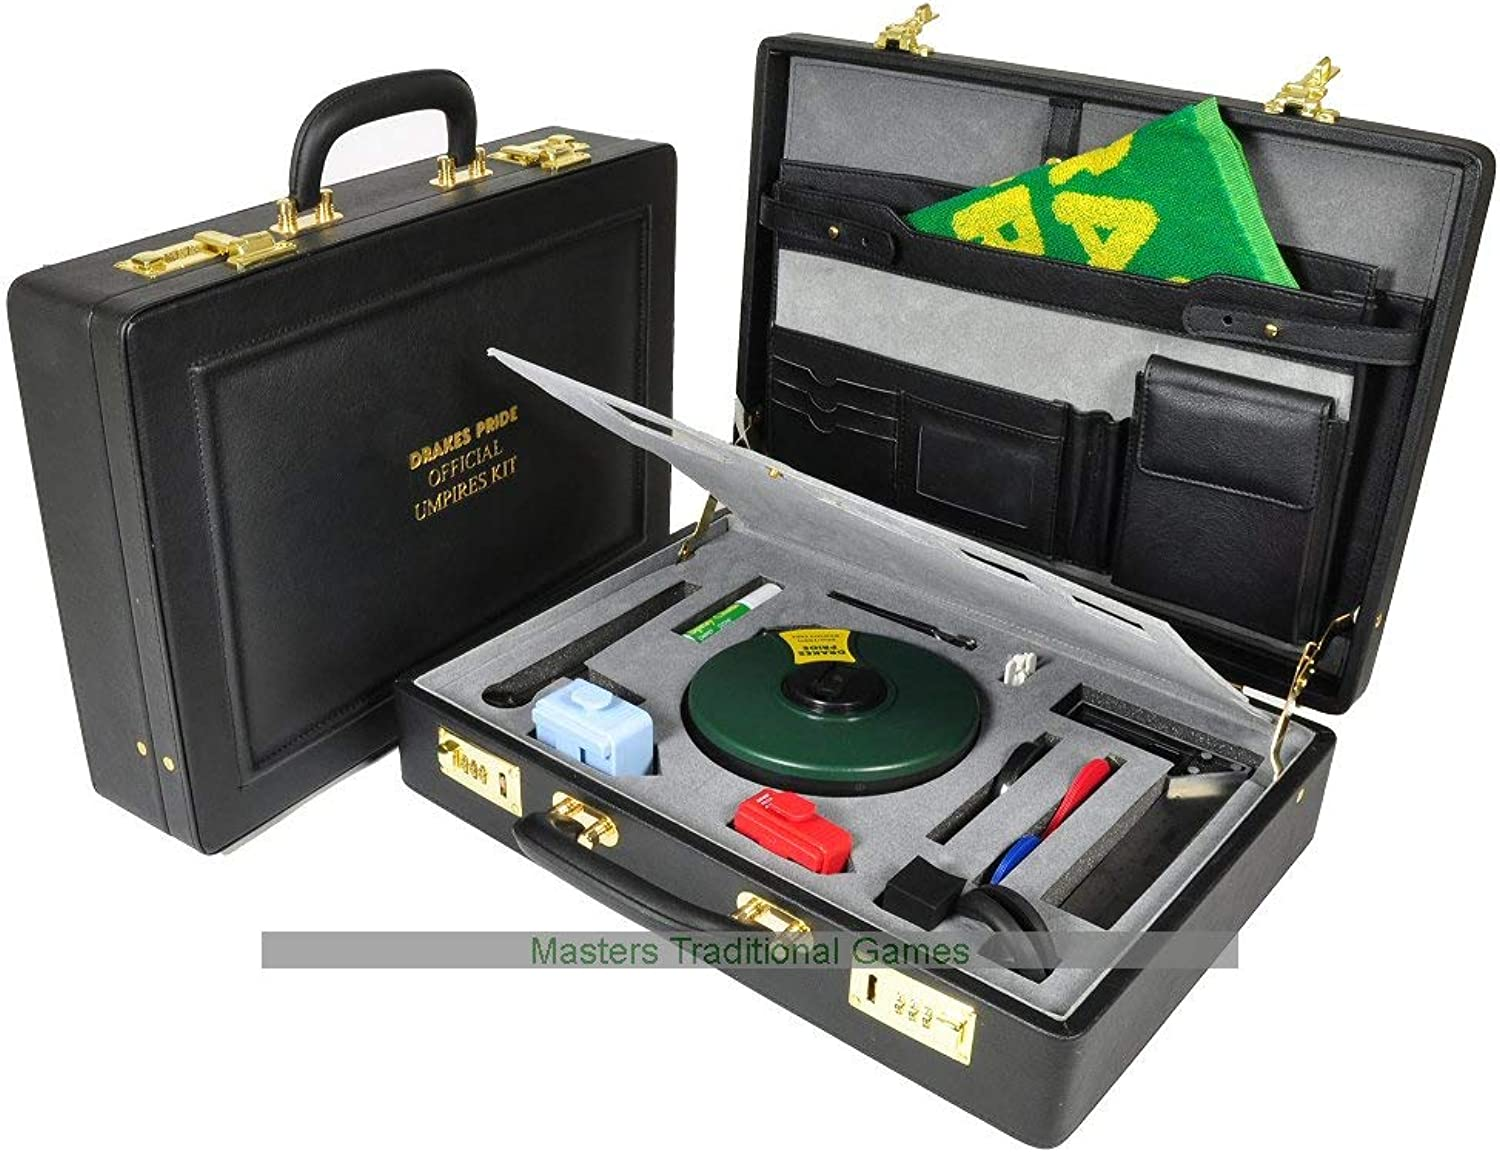 Official Drakes Pride Umpires Kit in Attache Case